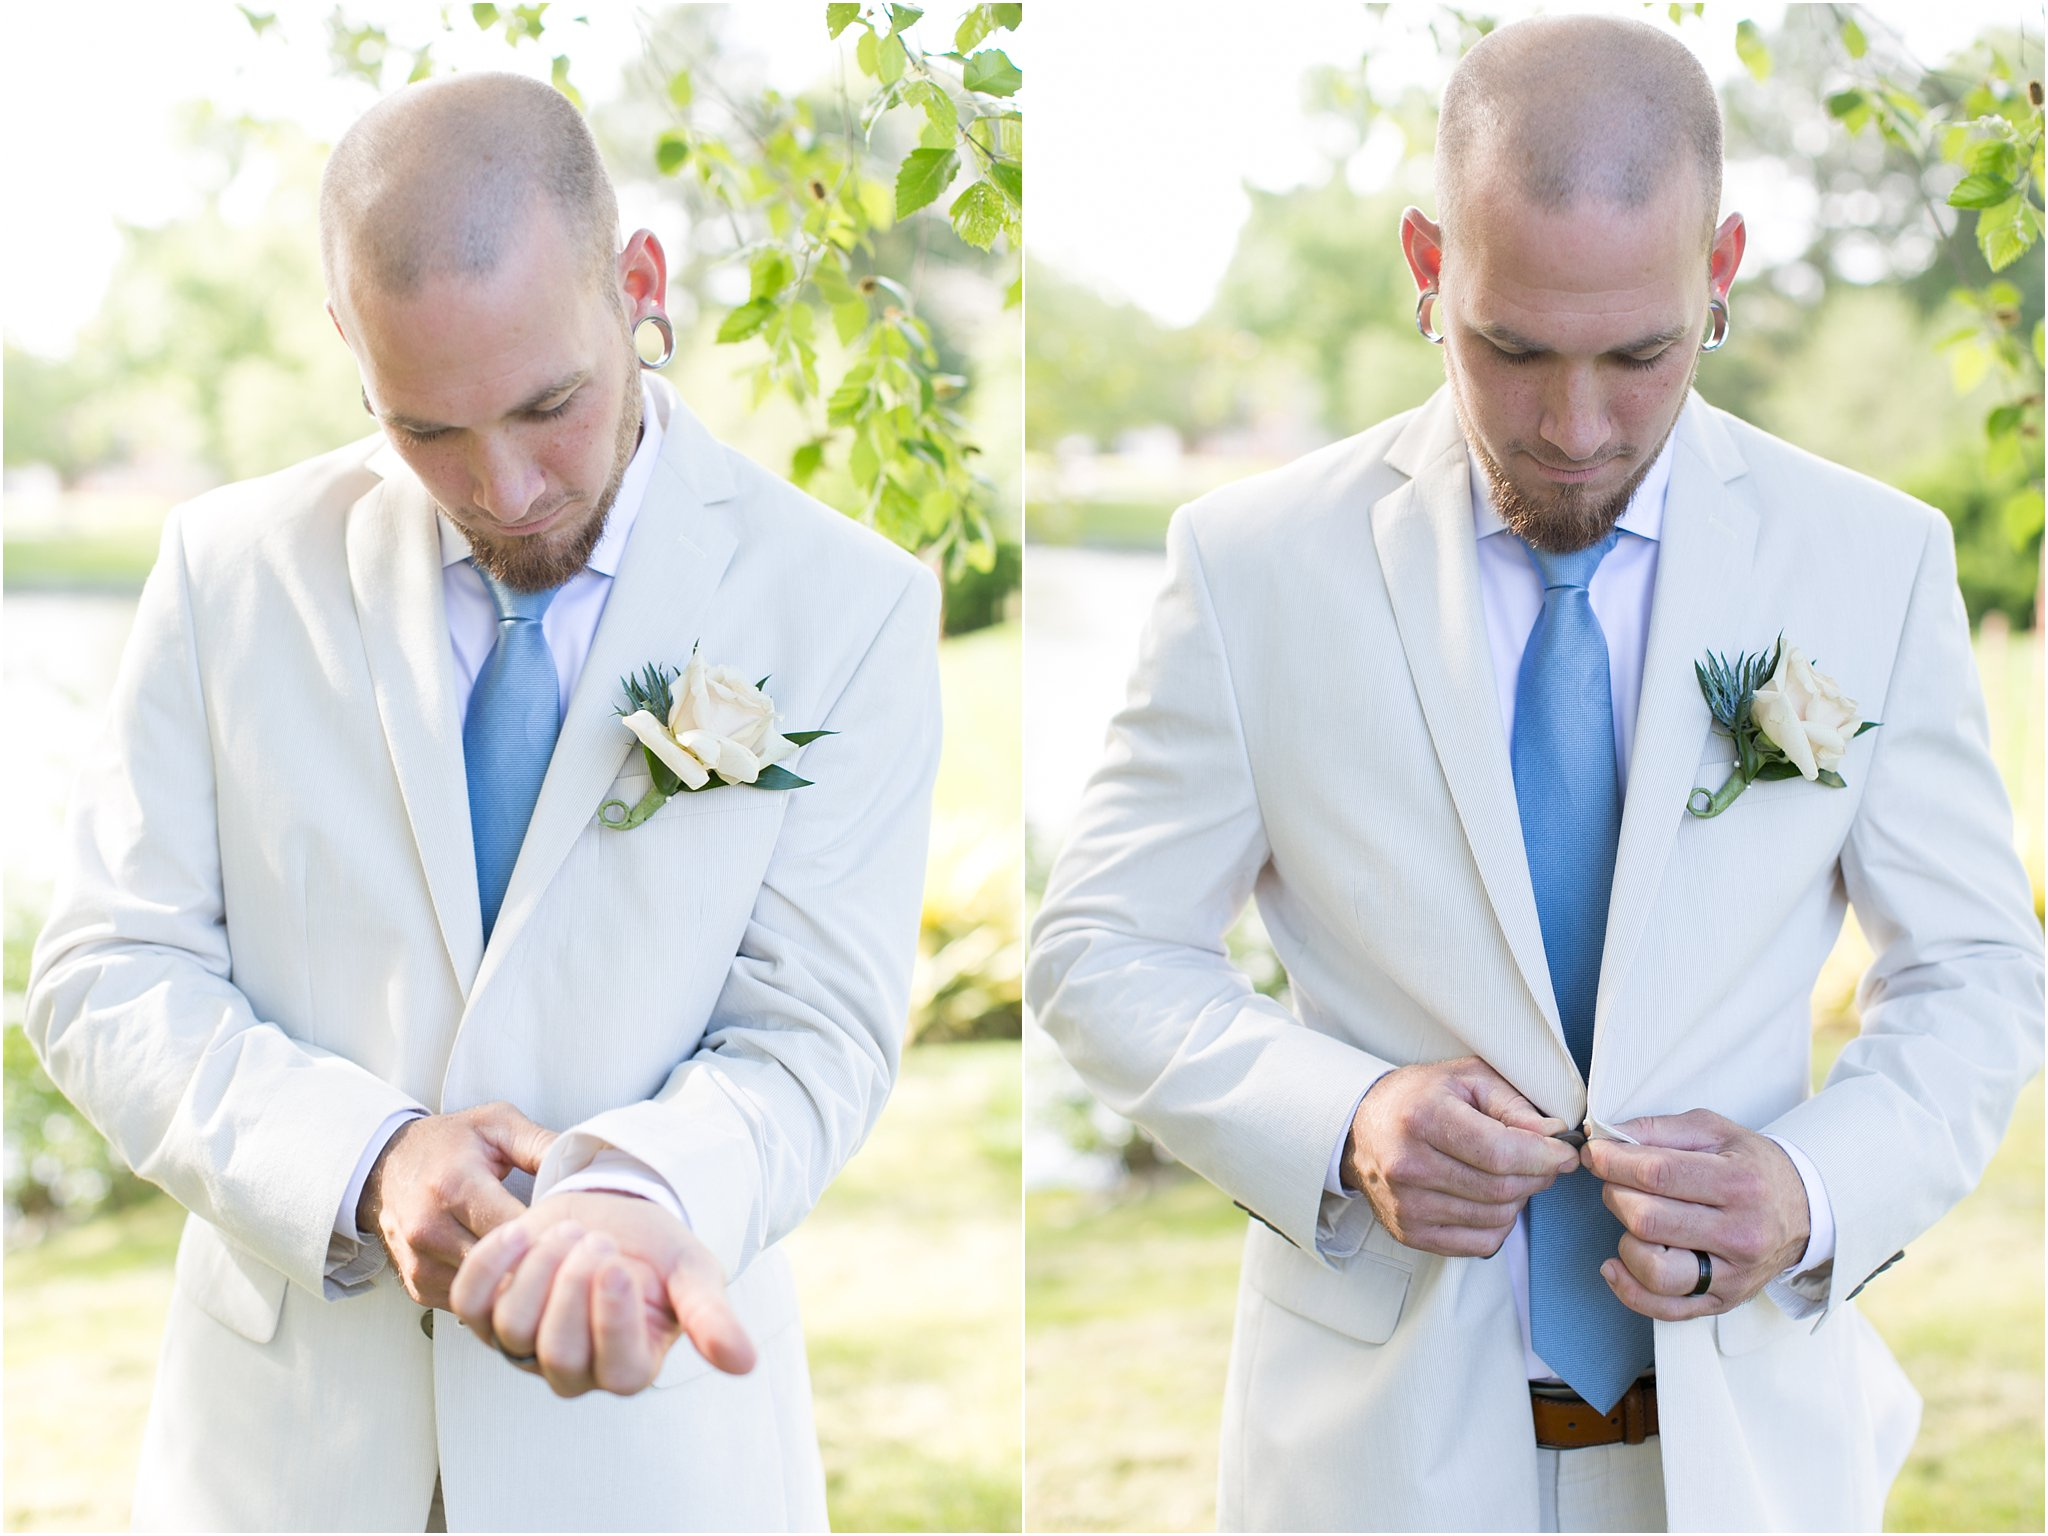 jessica_ryan_photography_virginia_virginiabeachweddingphotographer_studioIdo_backyardwedding_waterfrontwedding_1680